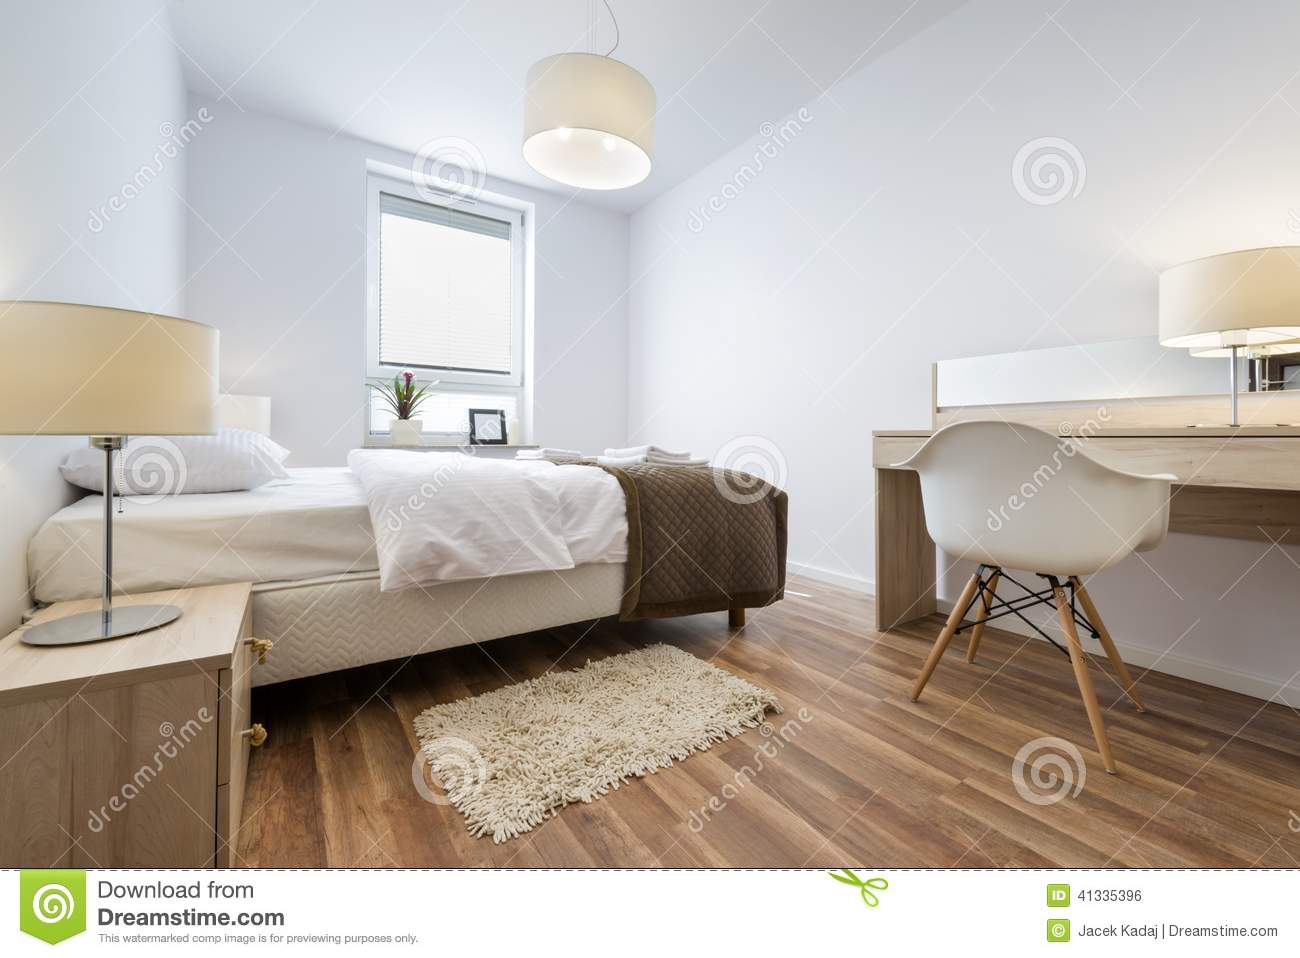 Interior Design Series: Modern Bedroom Stock Photo - Image of living ...